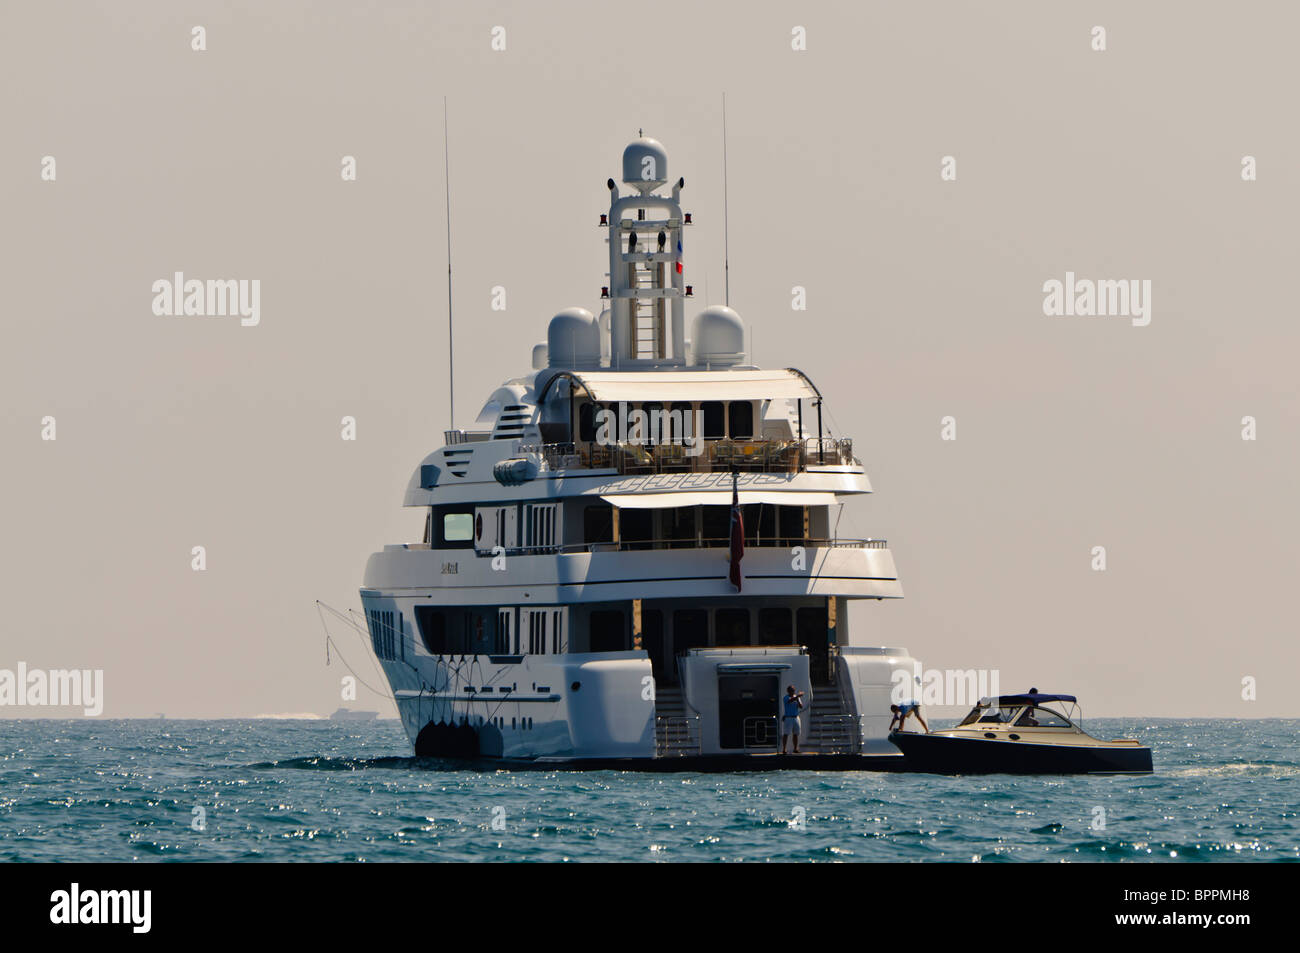 """Superyacht """"April Fool"""" and tender boat anchored in the Mediterranean Sea Stock Photo"""